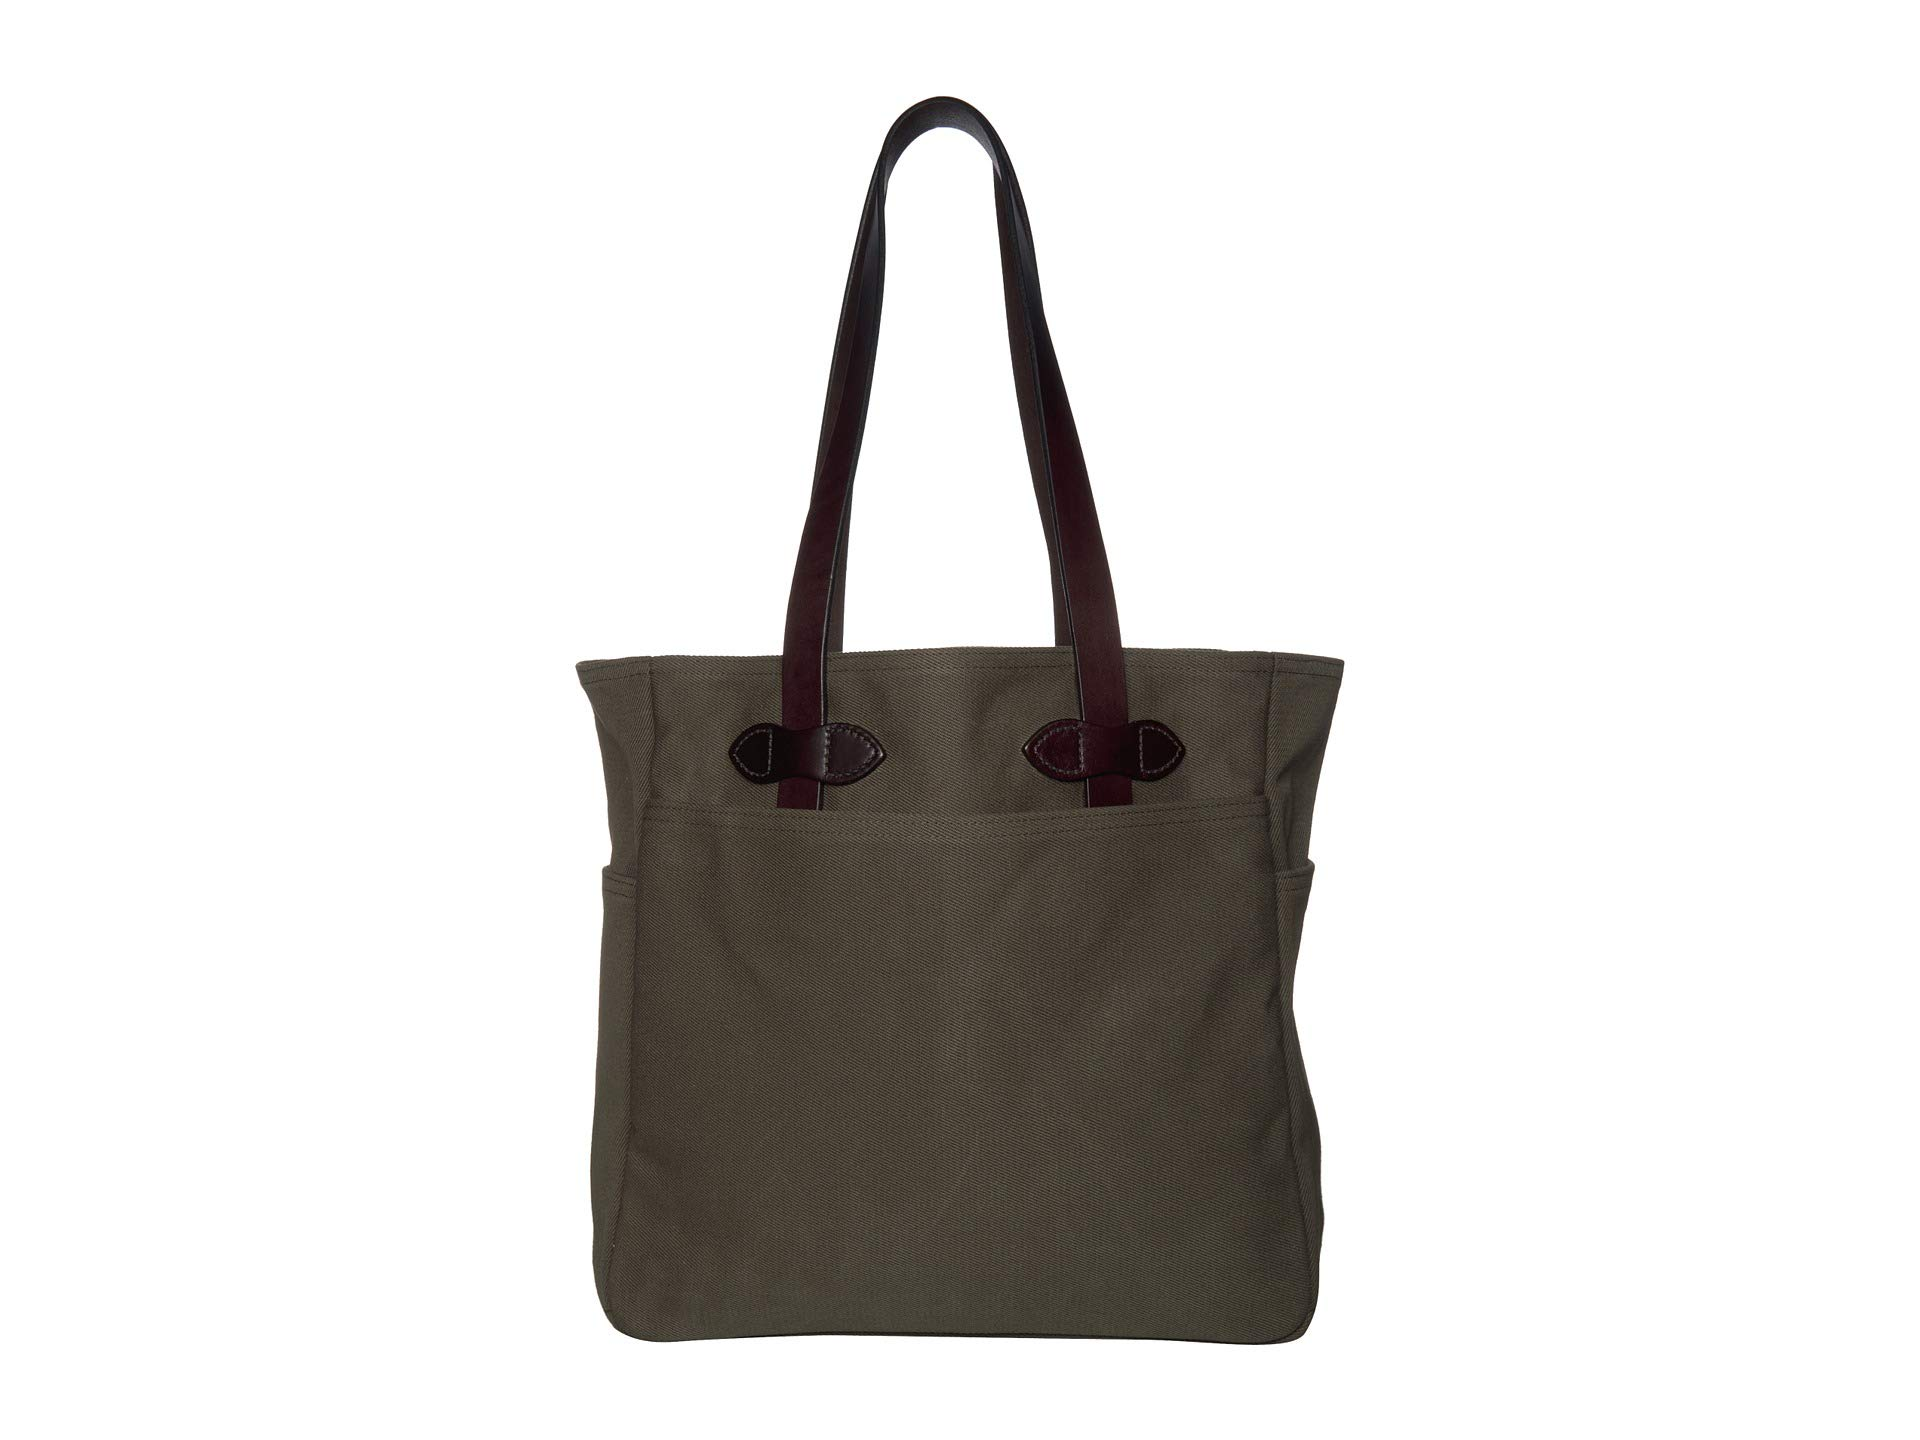 Filson Unisex Tote Bag W/Out Zipper Otter Green1 One Size by Filson